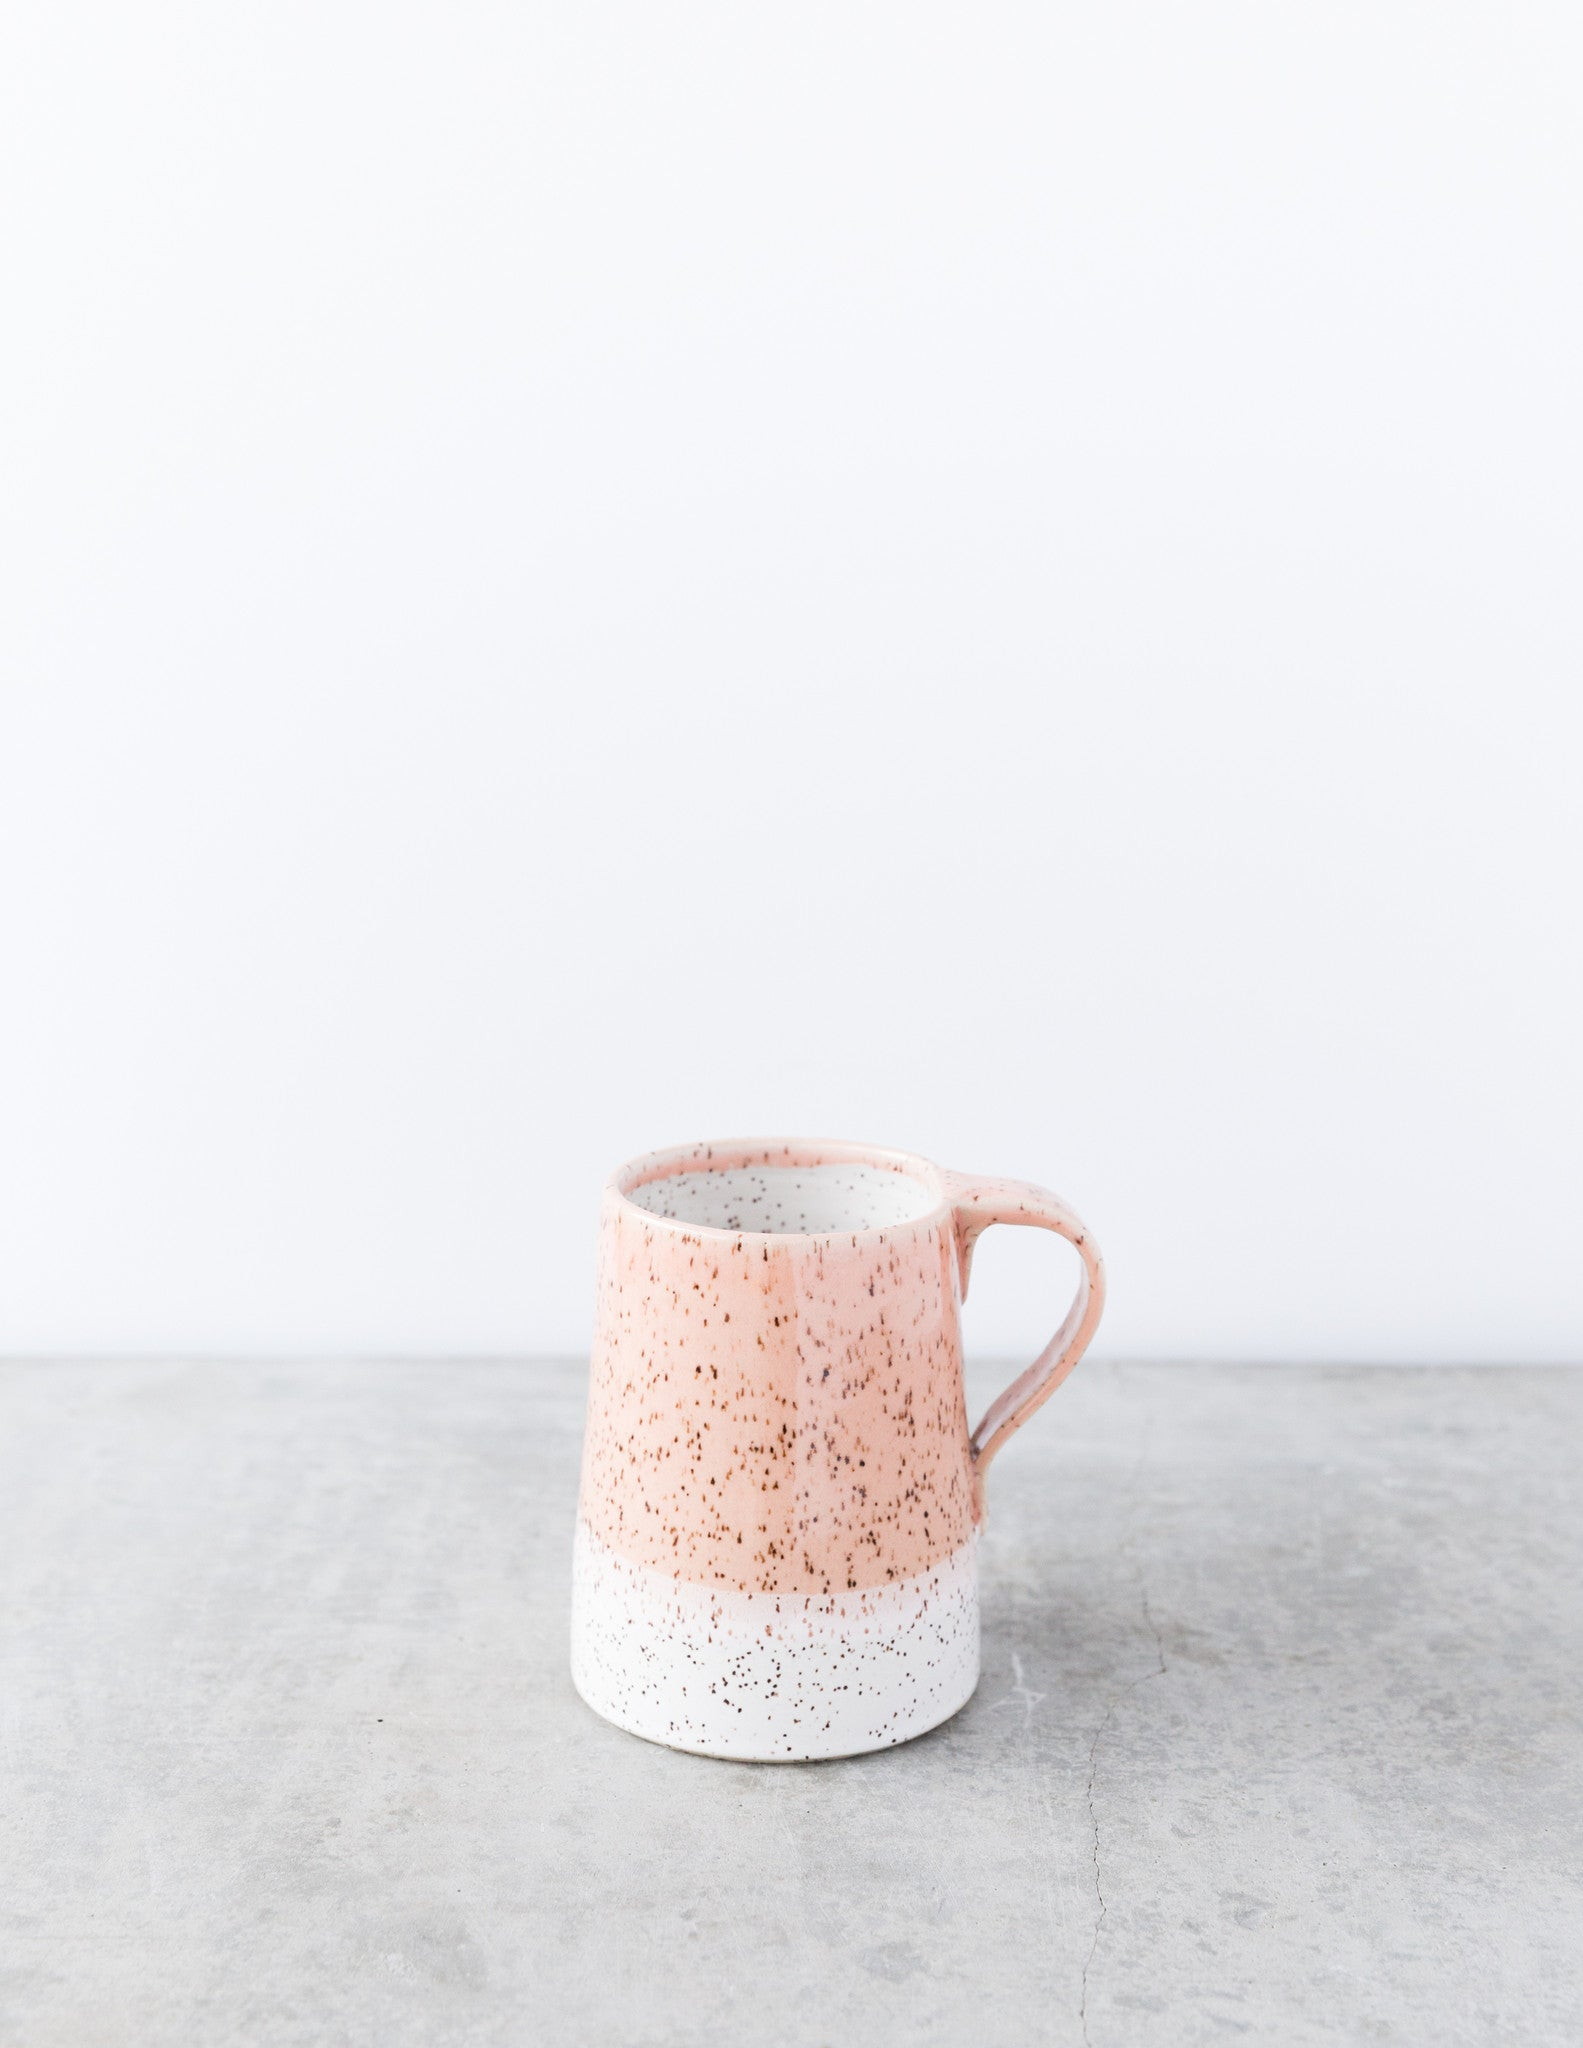 Dahlhaus Dipped Speckled Mug in Pink